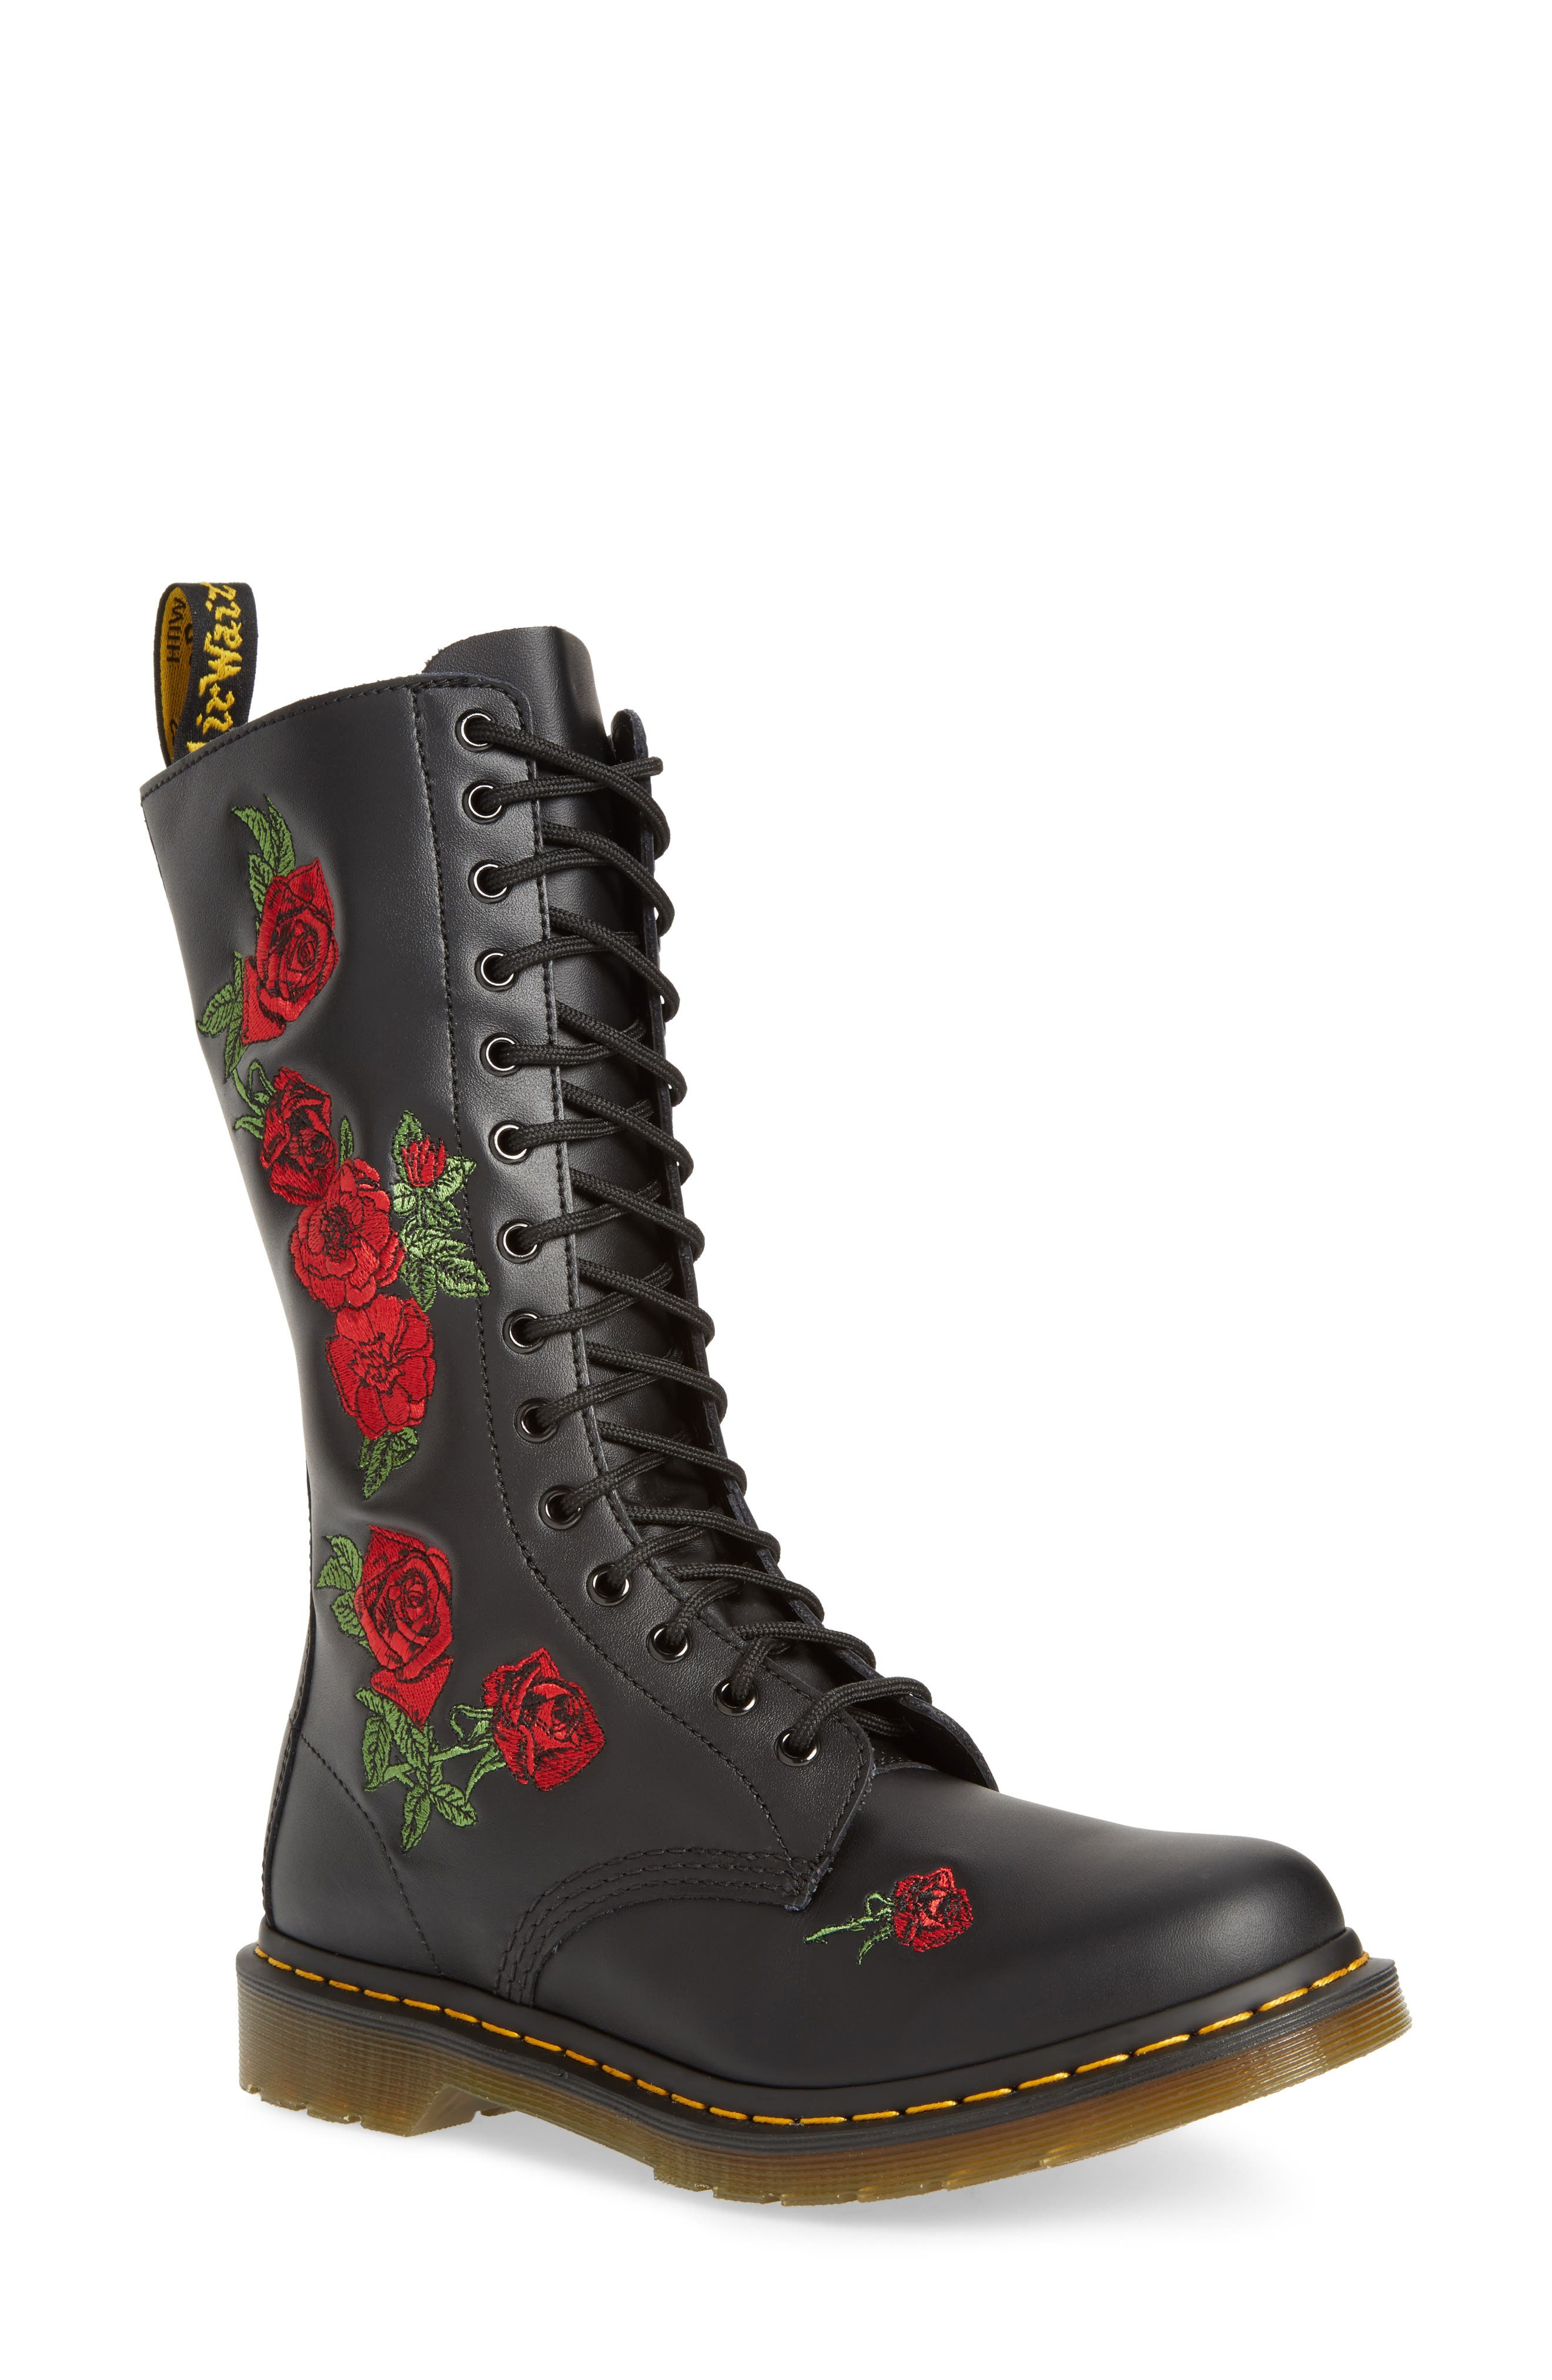 Alternate Image 1 Selected - Dr. Martens Vonda Lace-Up Boot (Women)